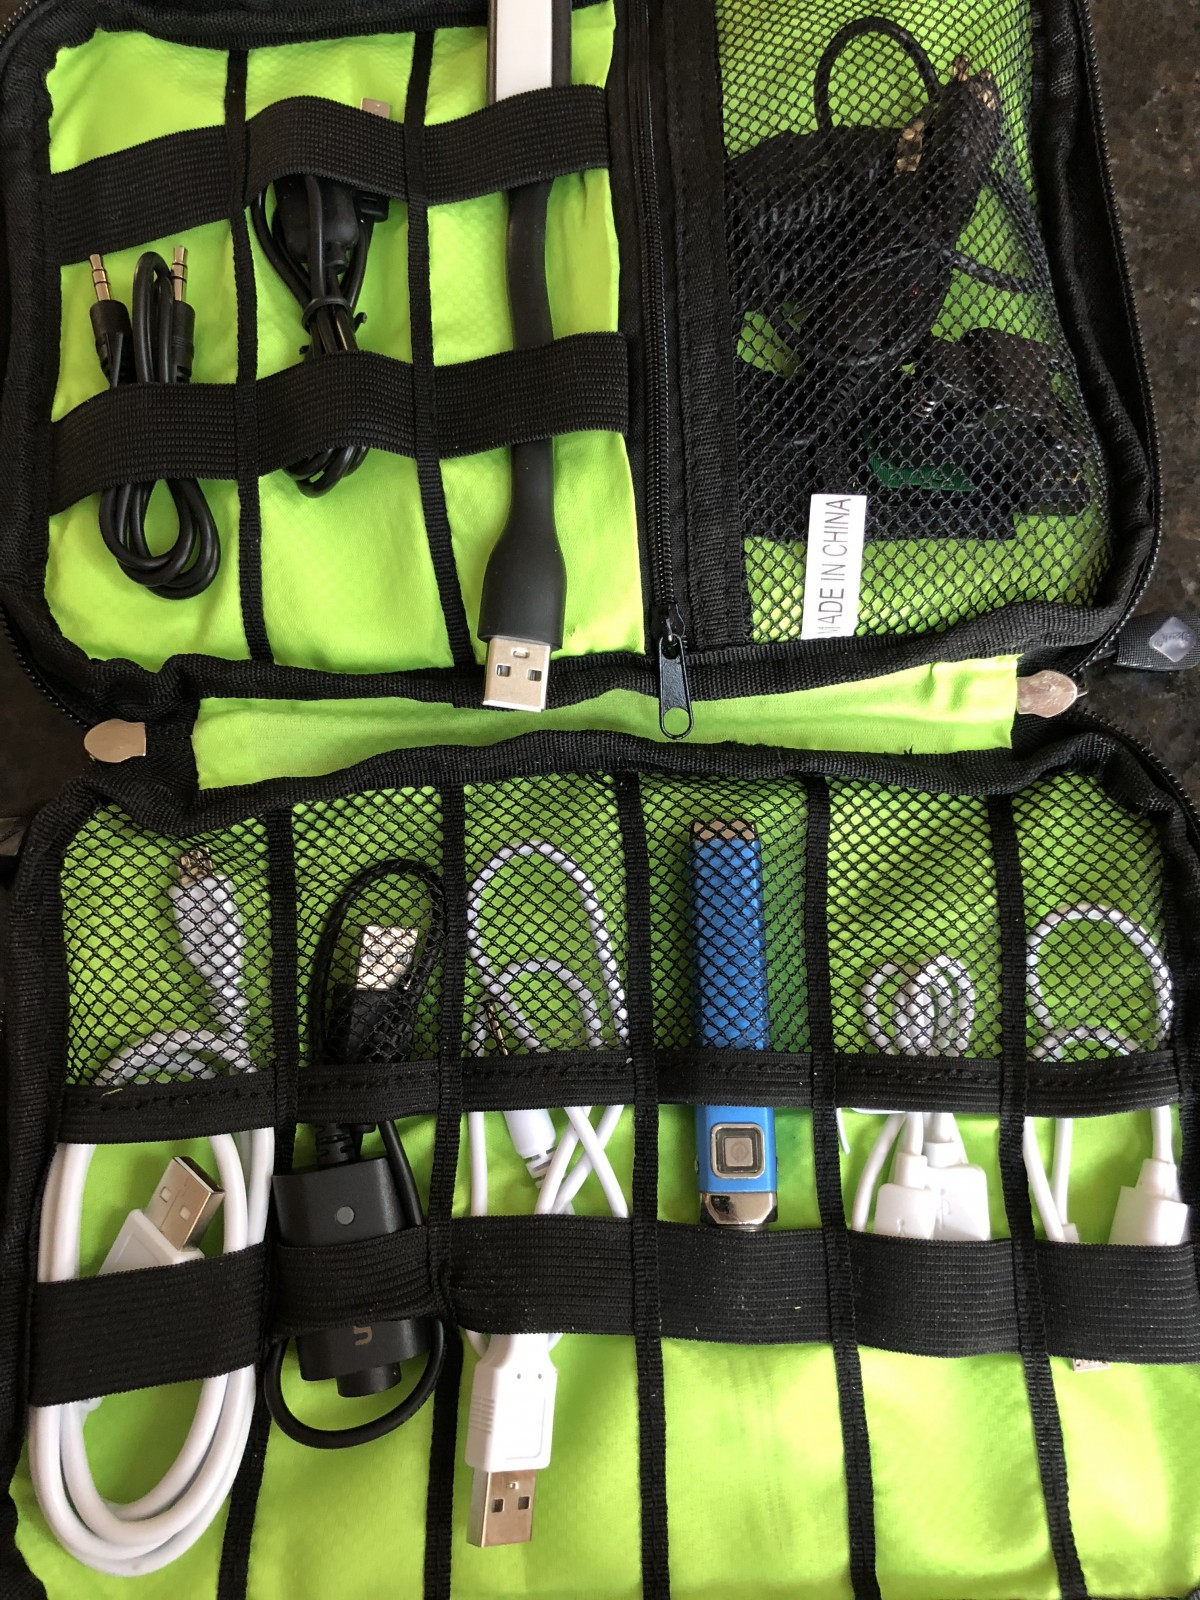 Organize Your USB Cables – Travel & Junk Drawer Organizer